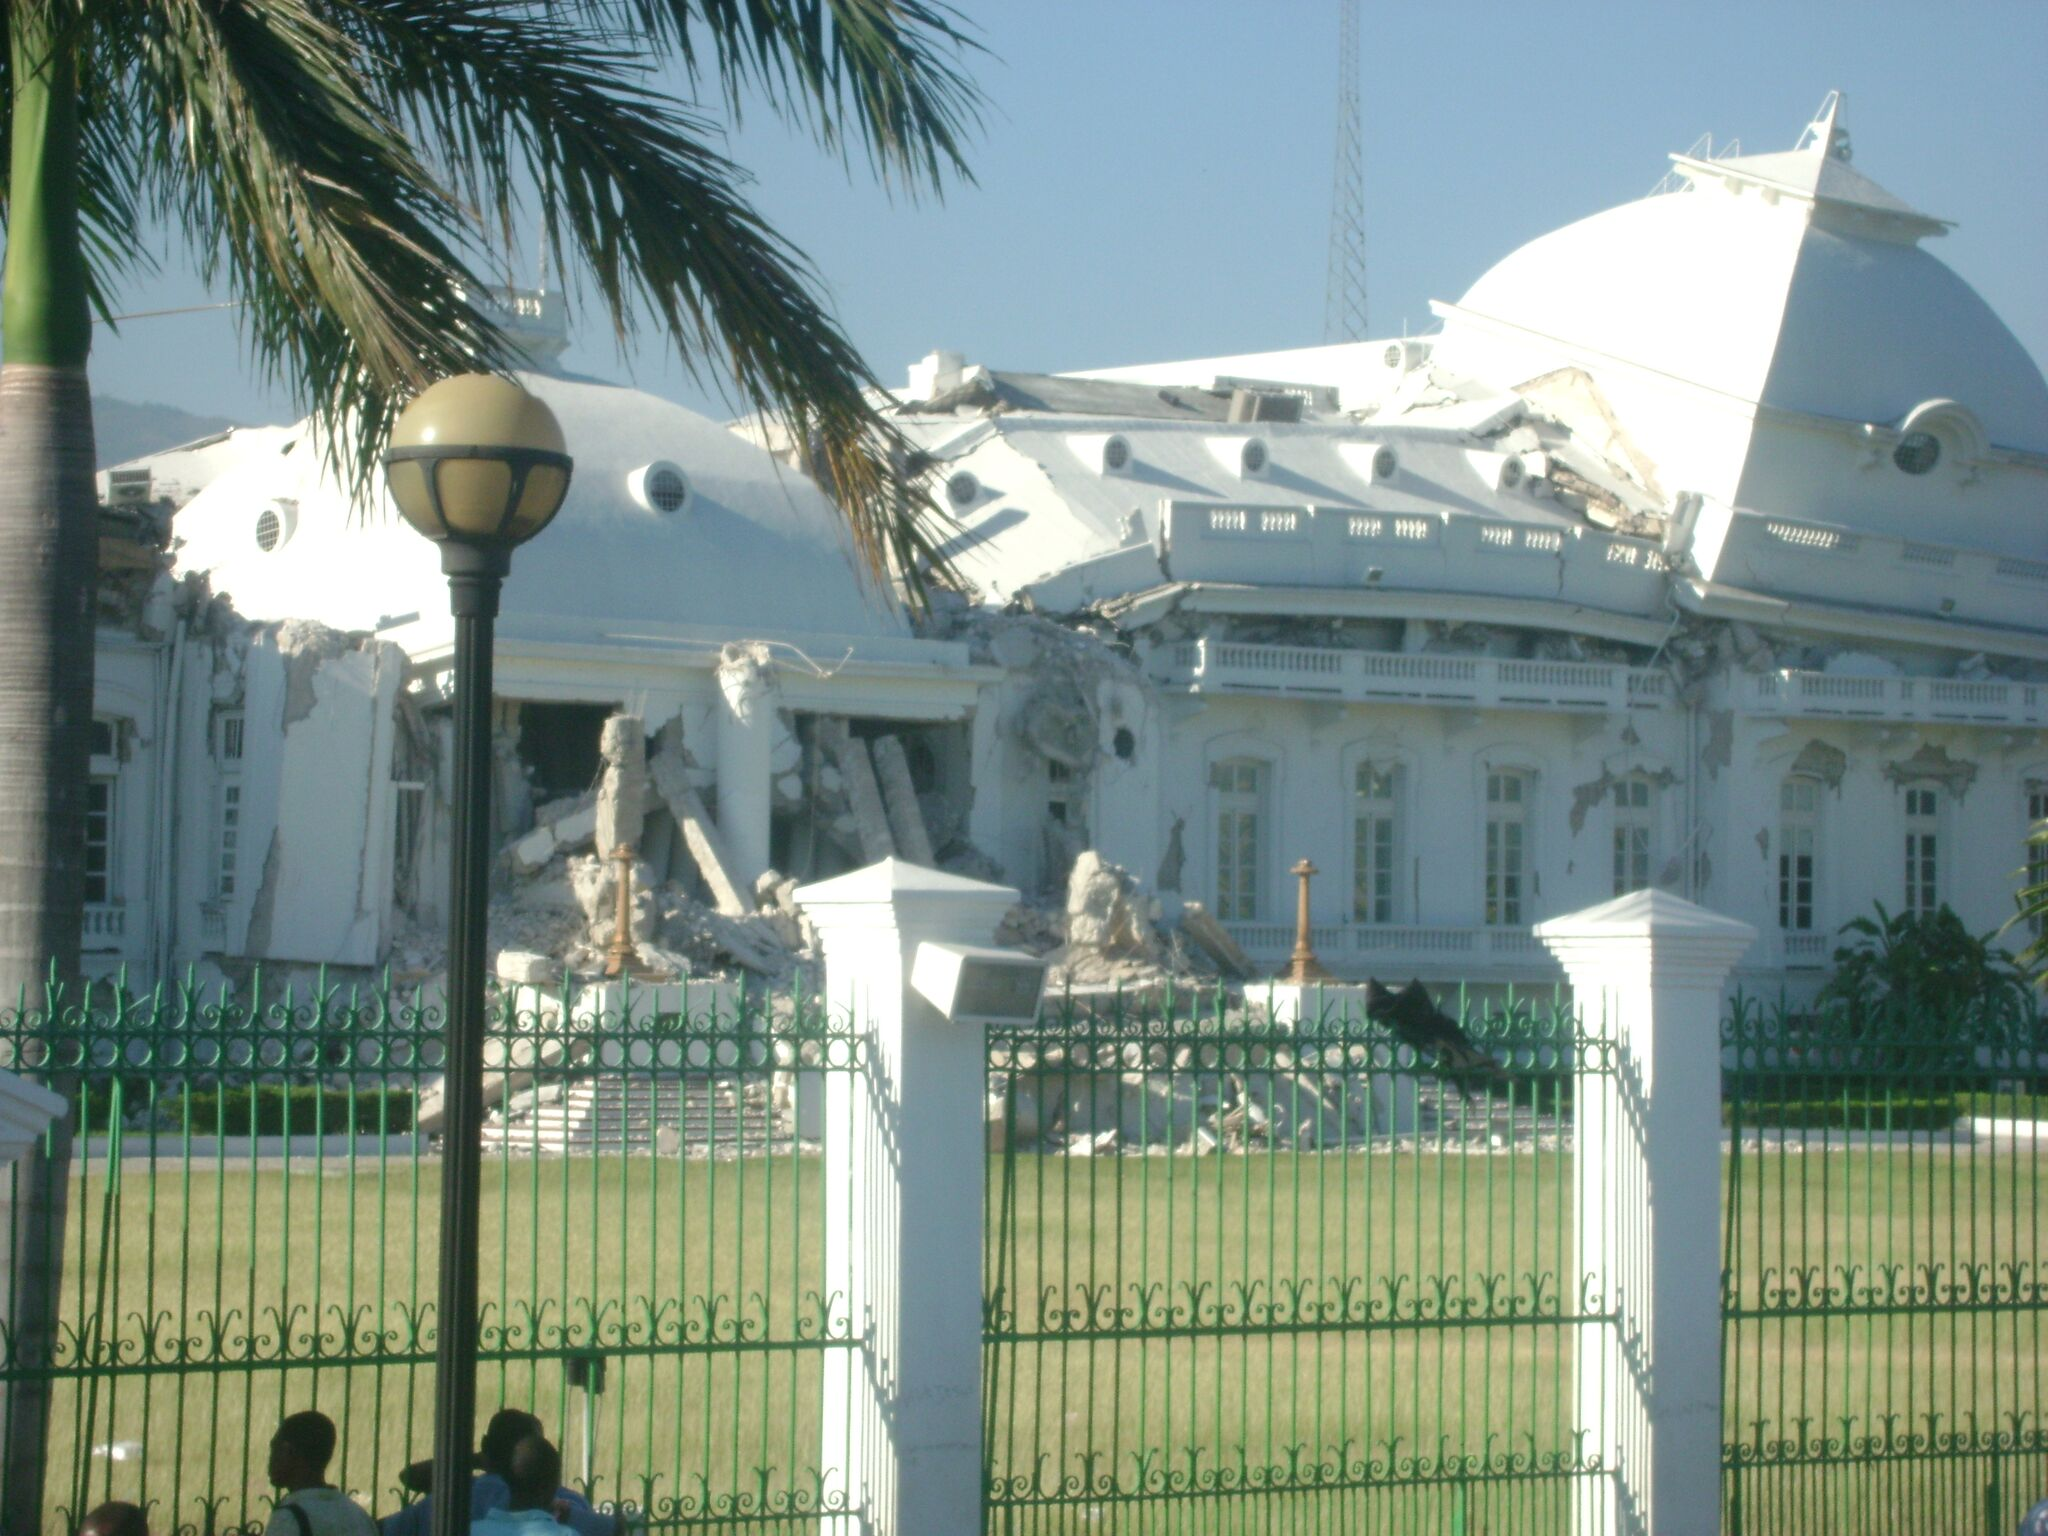 The presidential palace with damage from the quake in Port au Prince, Haiti.